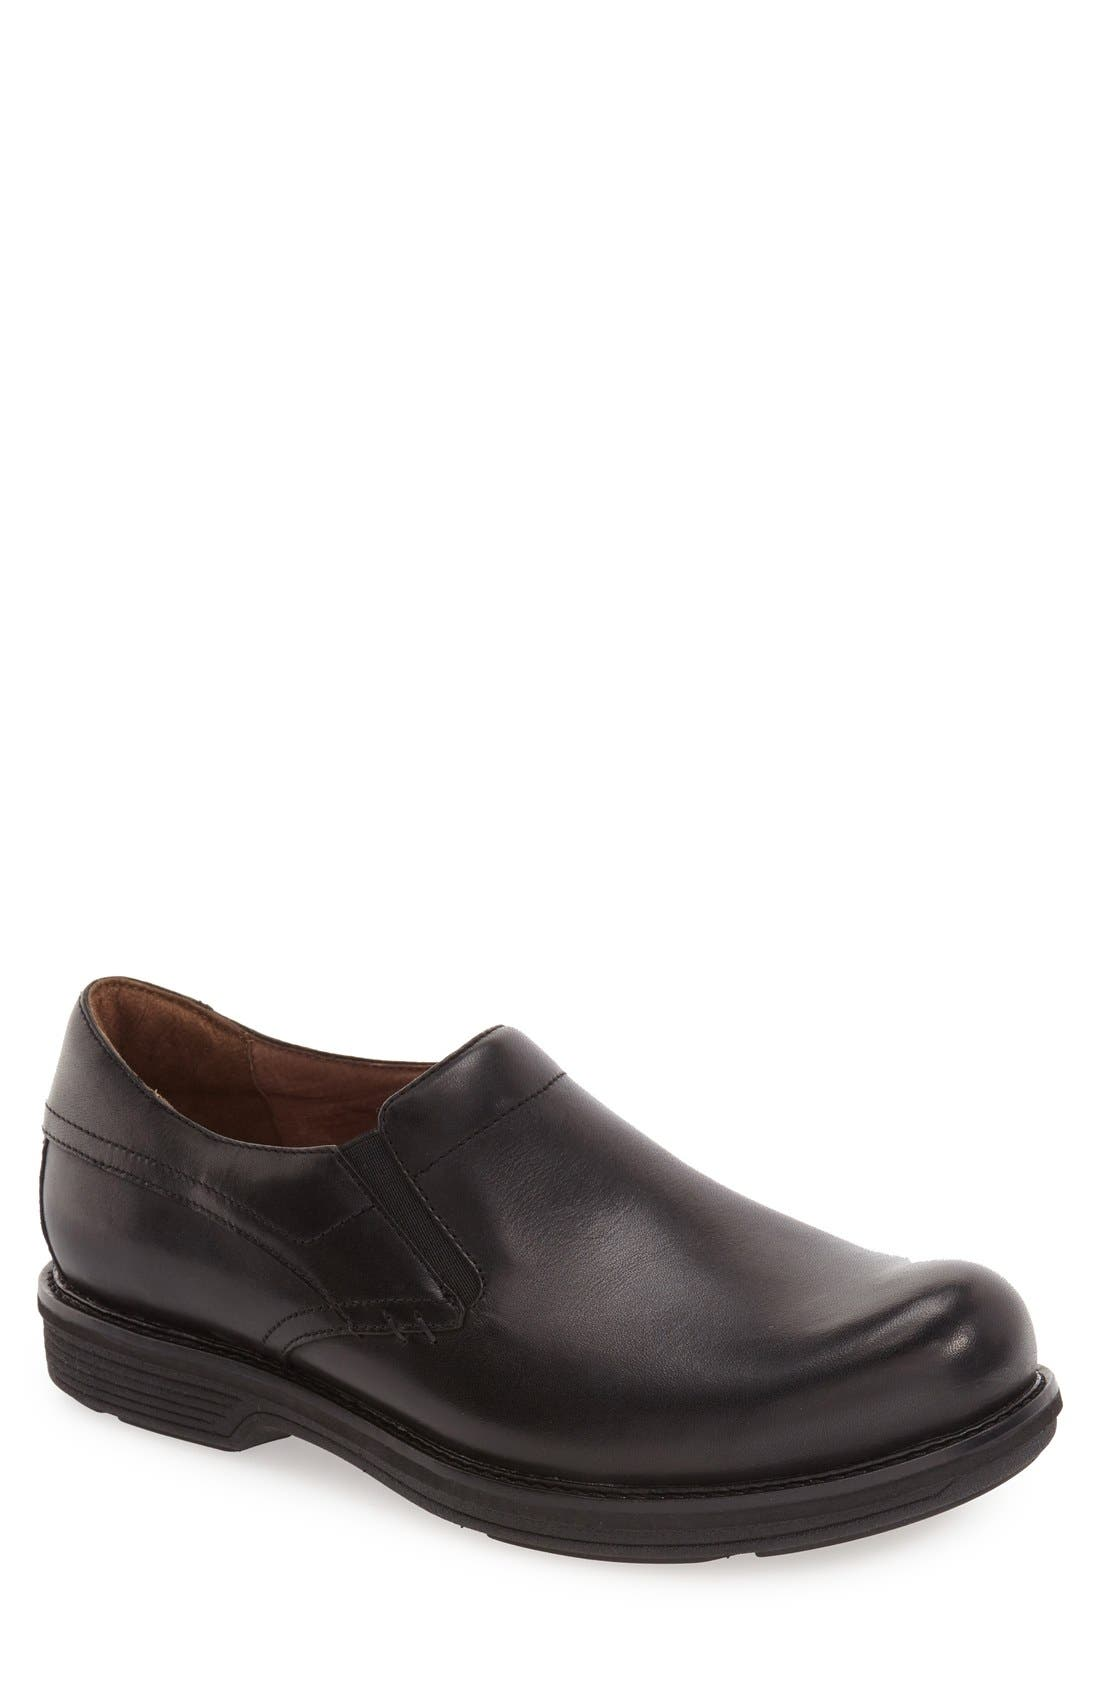 DANSKO 'Jackson' Leather Slip-On